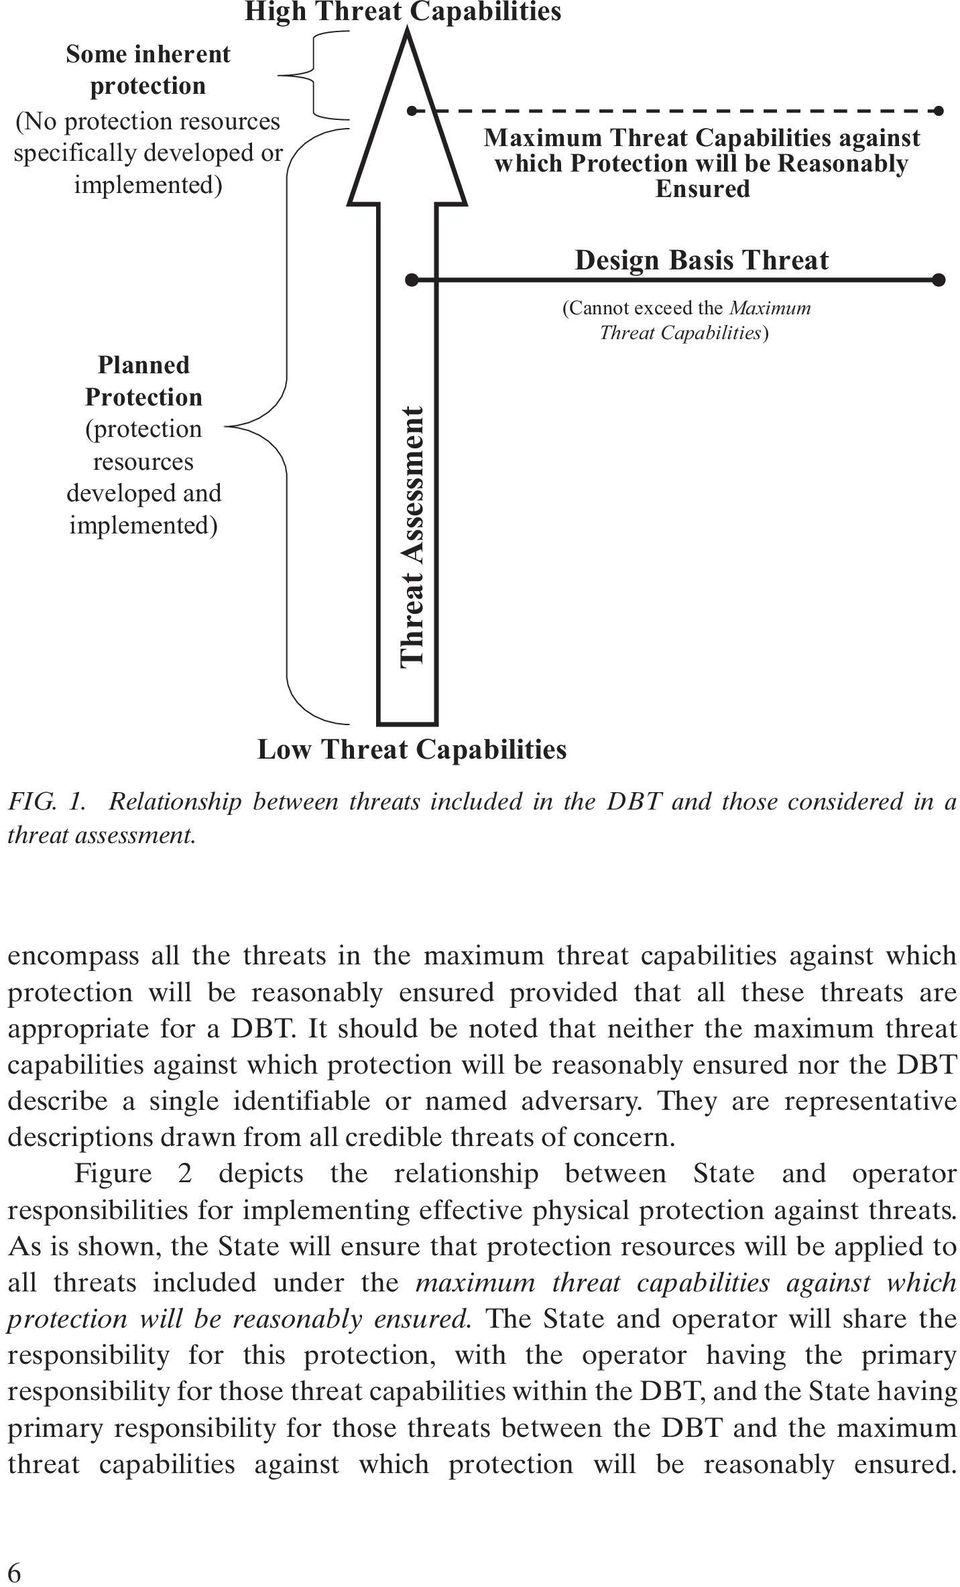 Relationship between threats included in the DBT and those considered in a threat assessment.